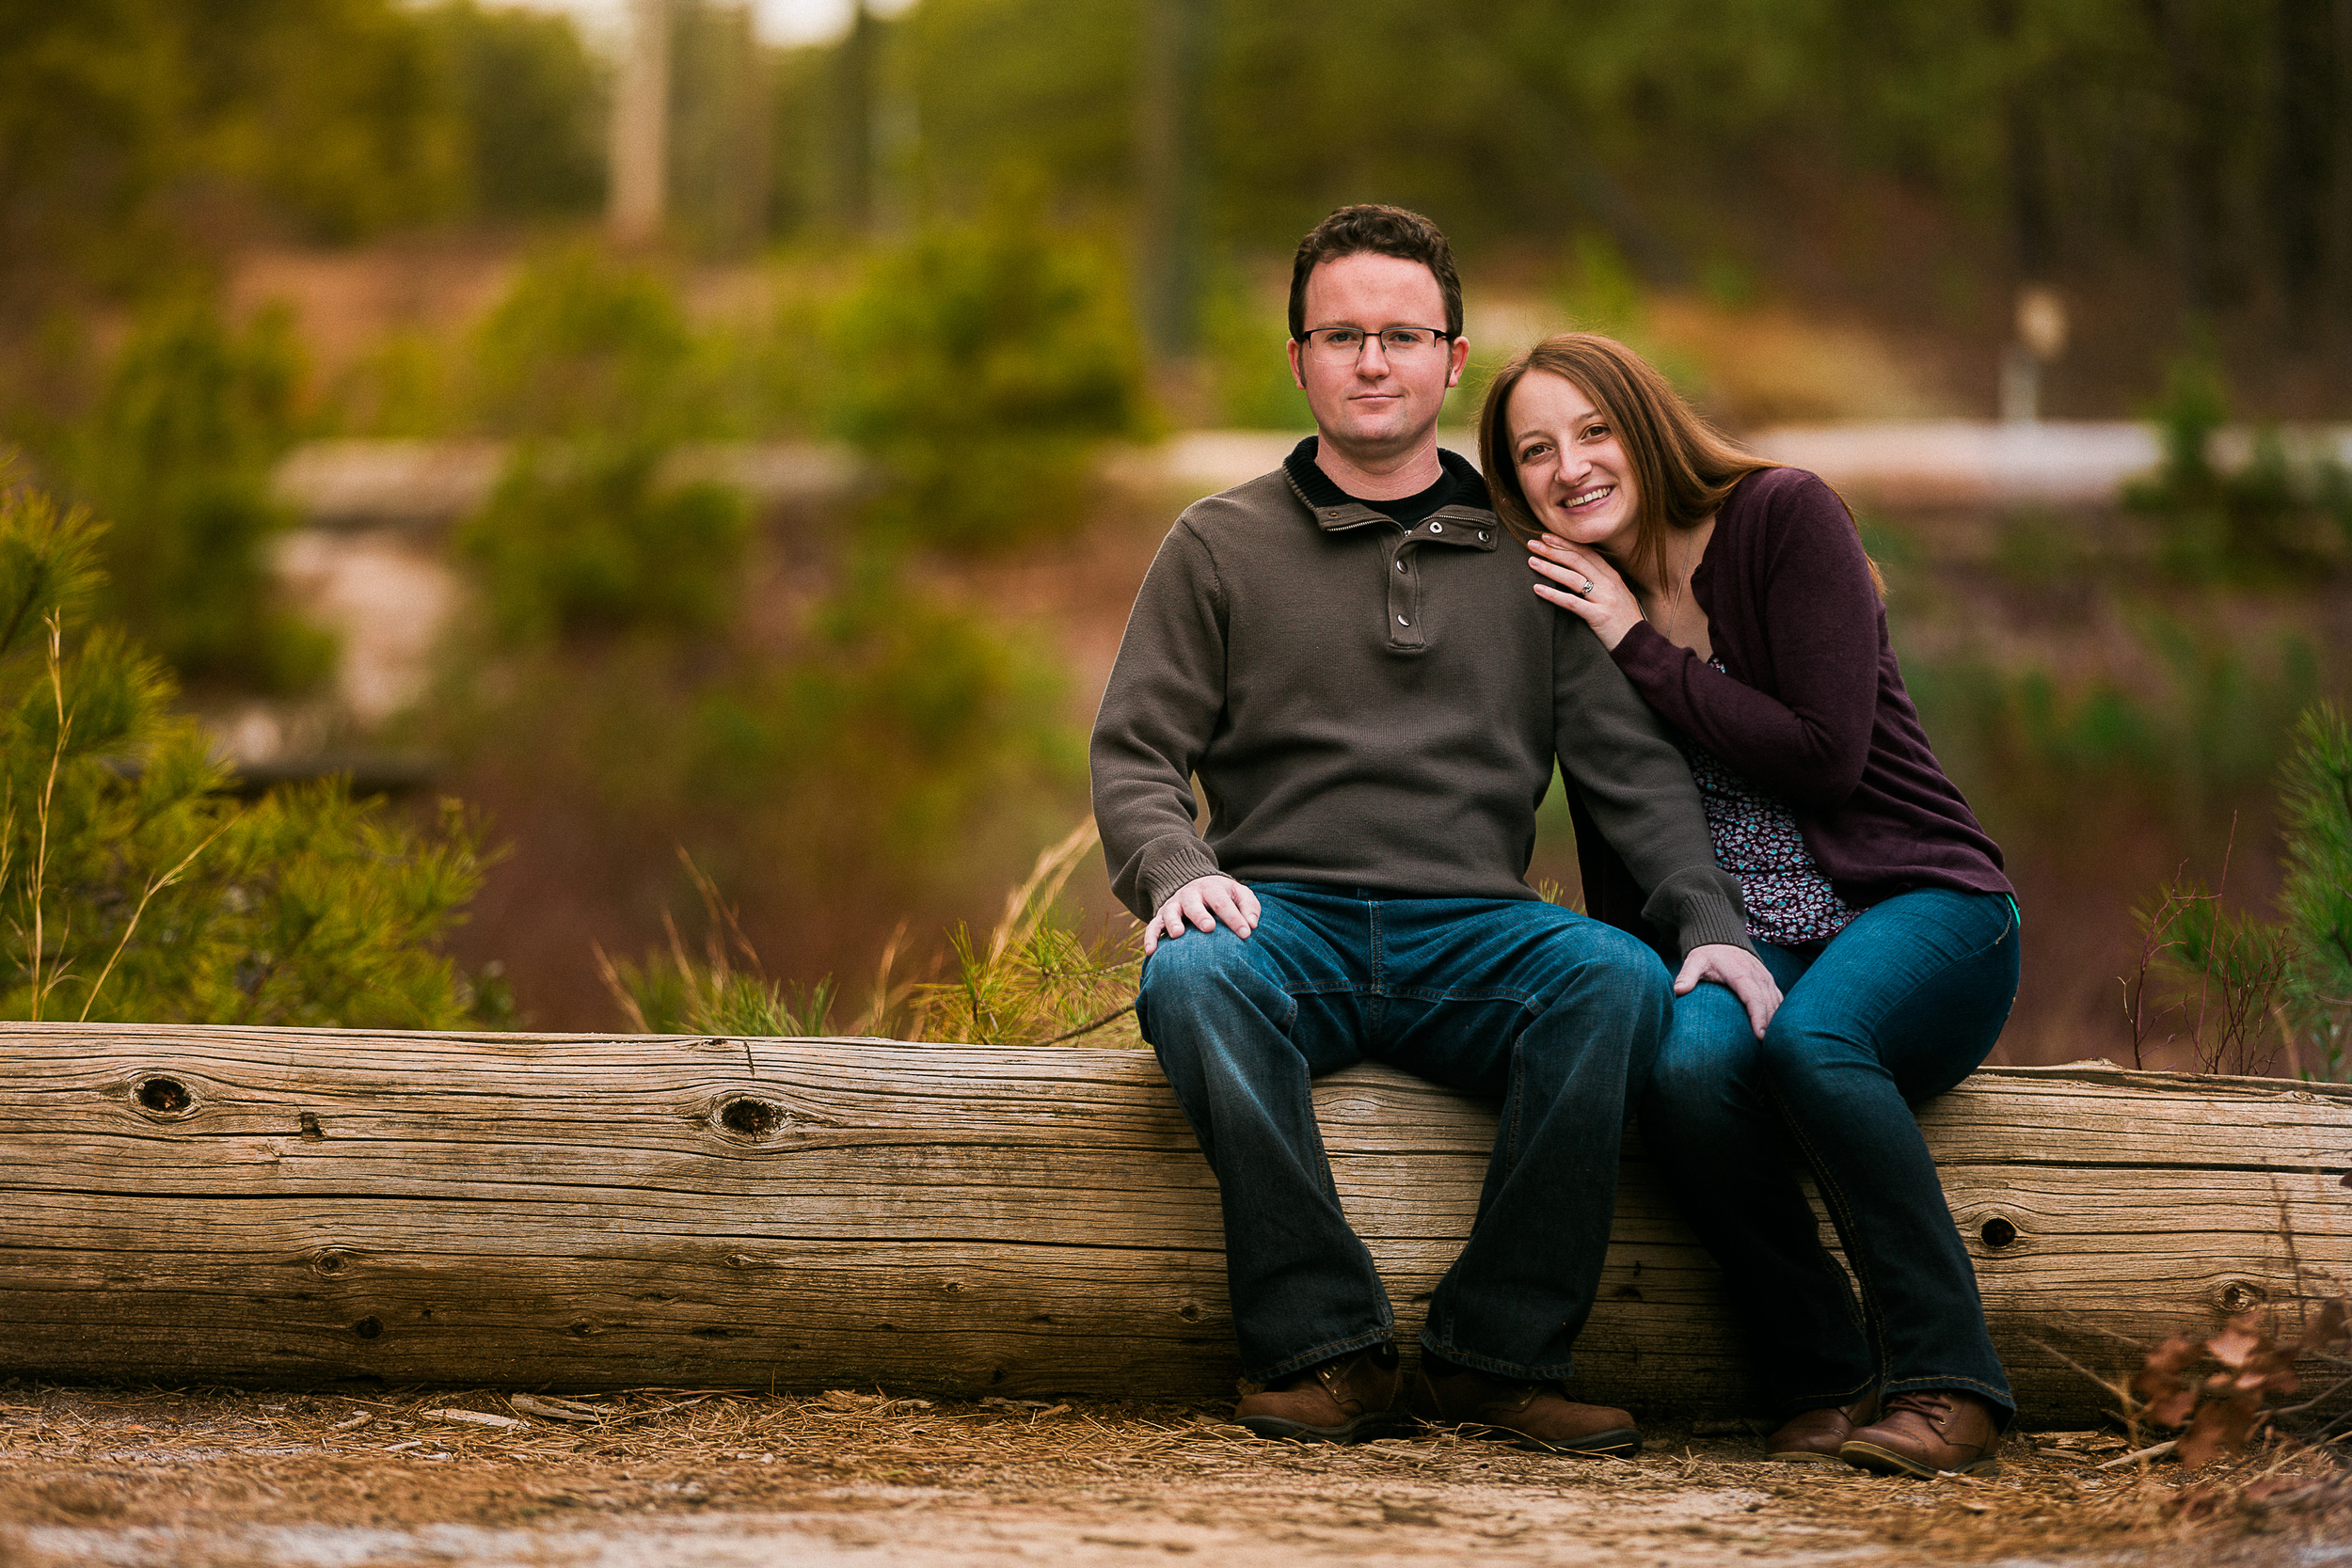 Samantha and Joe Engagement WRH Photography Depford NJ-4.jpg